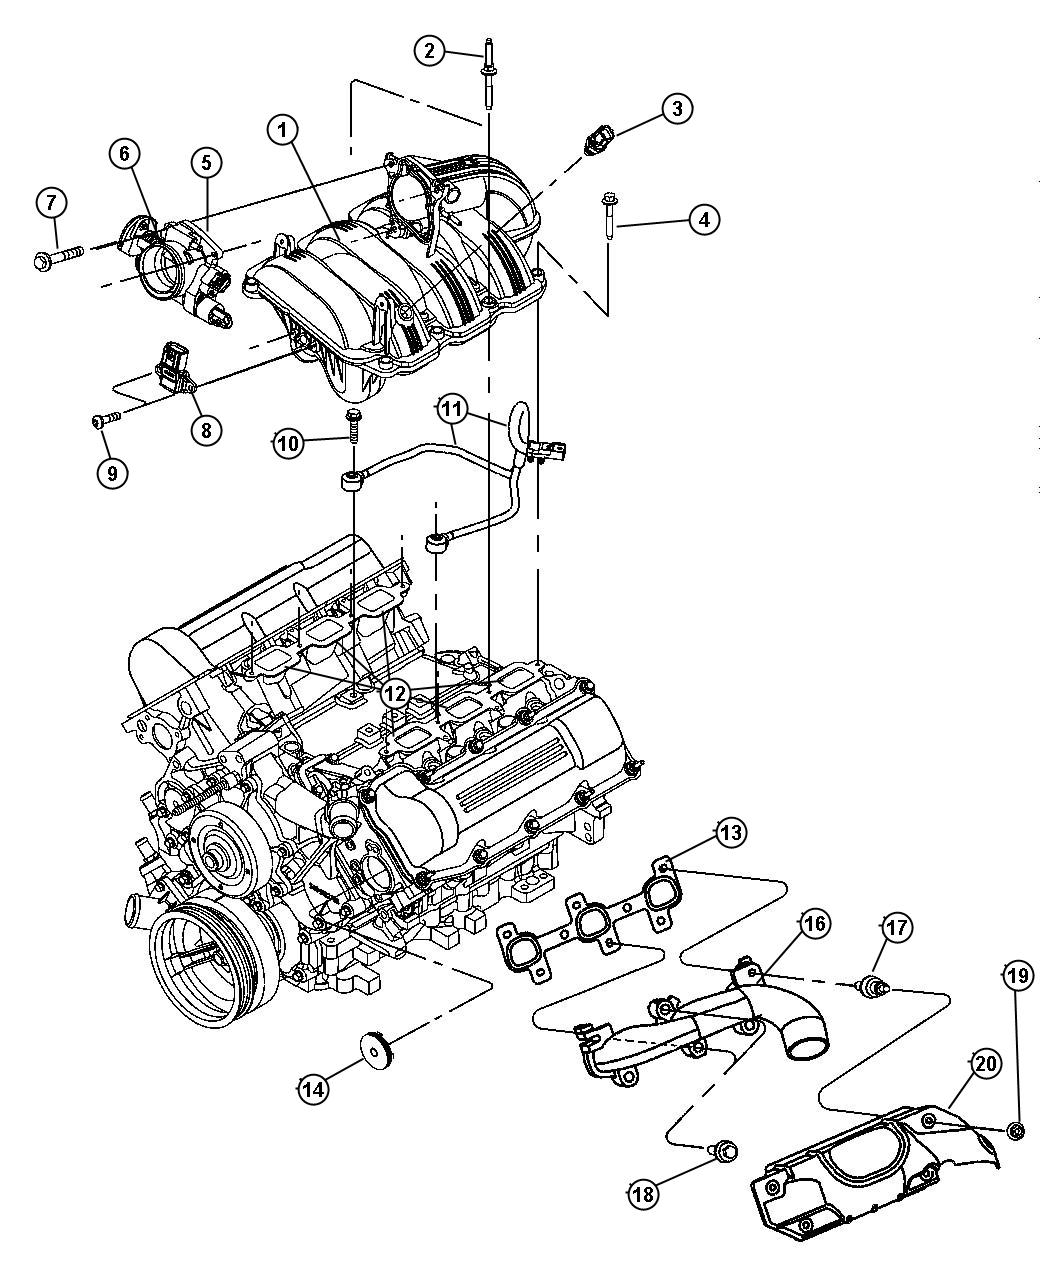 00i57715 jeep engine schematics,Daimler Sp250 Wiring Diagram